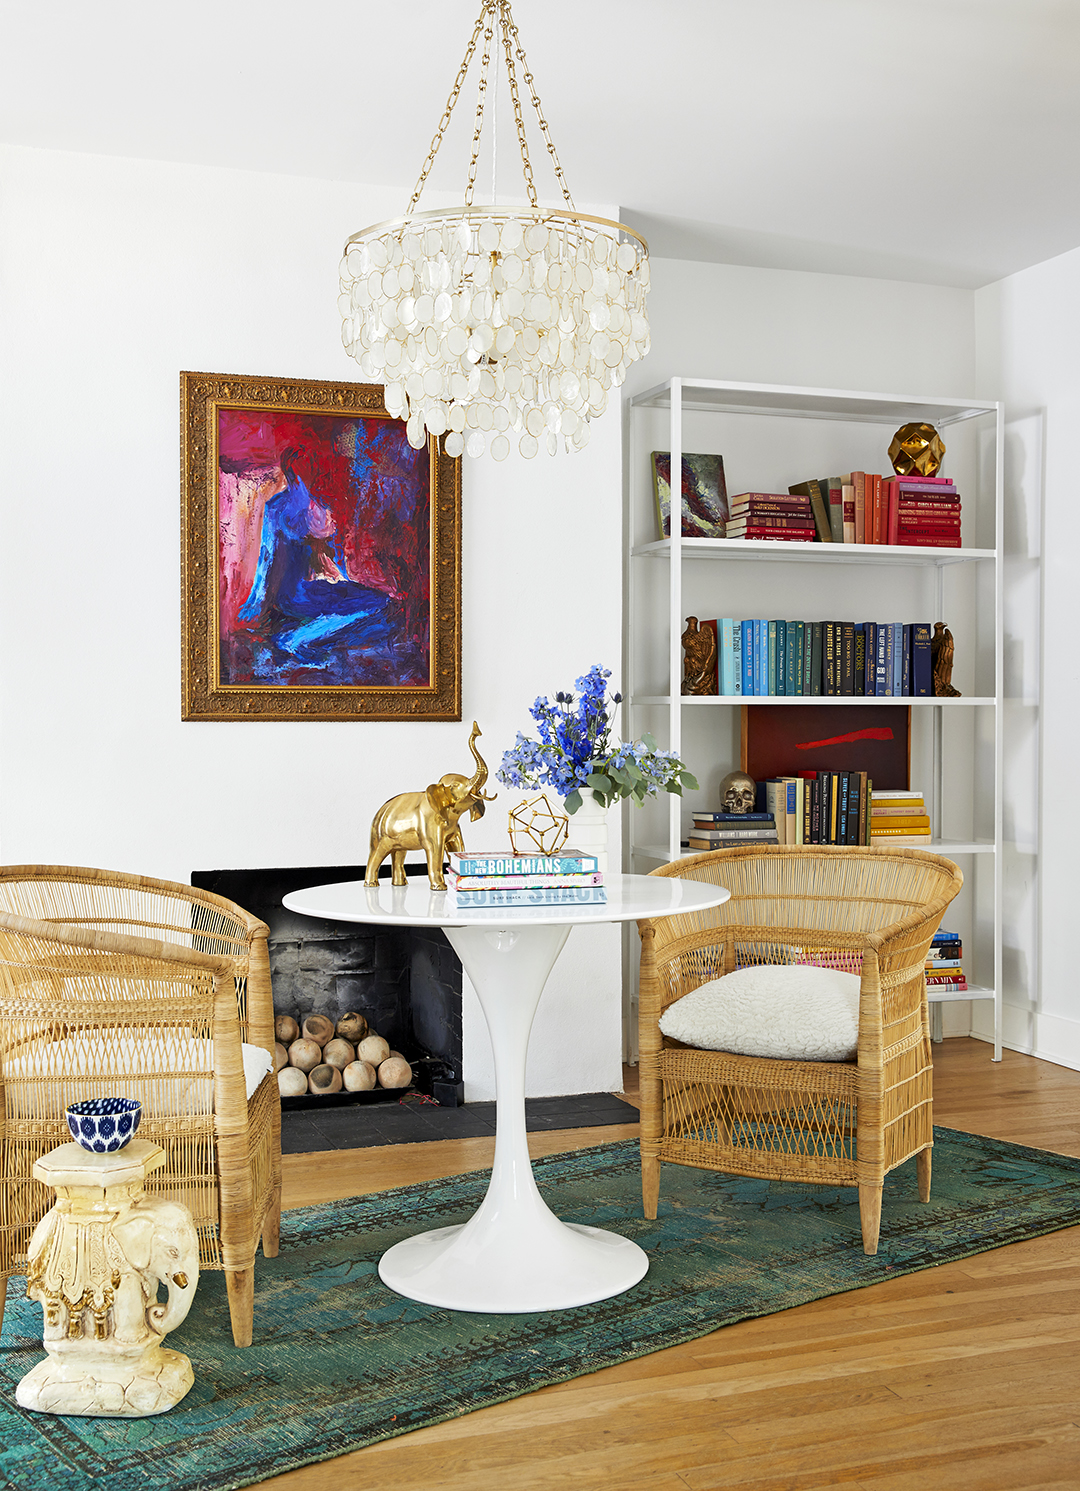 living-room-with-white-table-woven-chairs-cc7f27fa.jpg